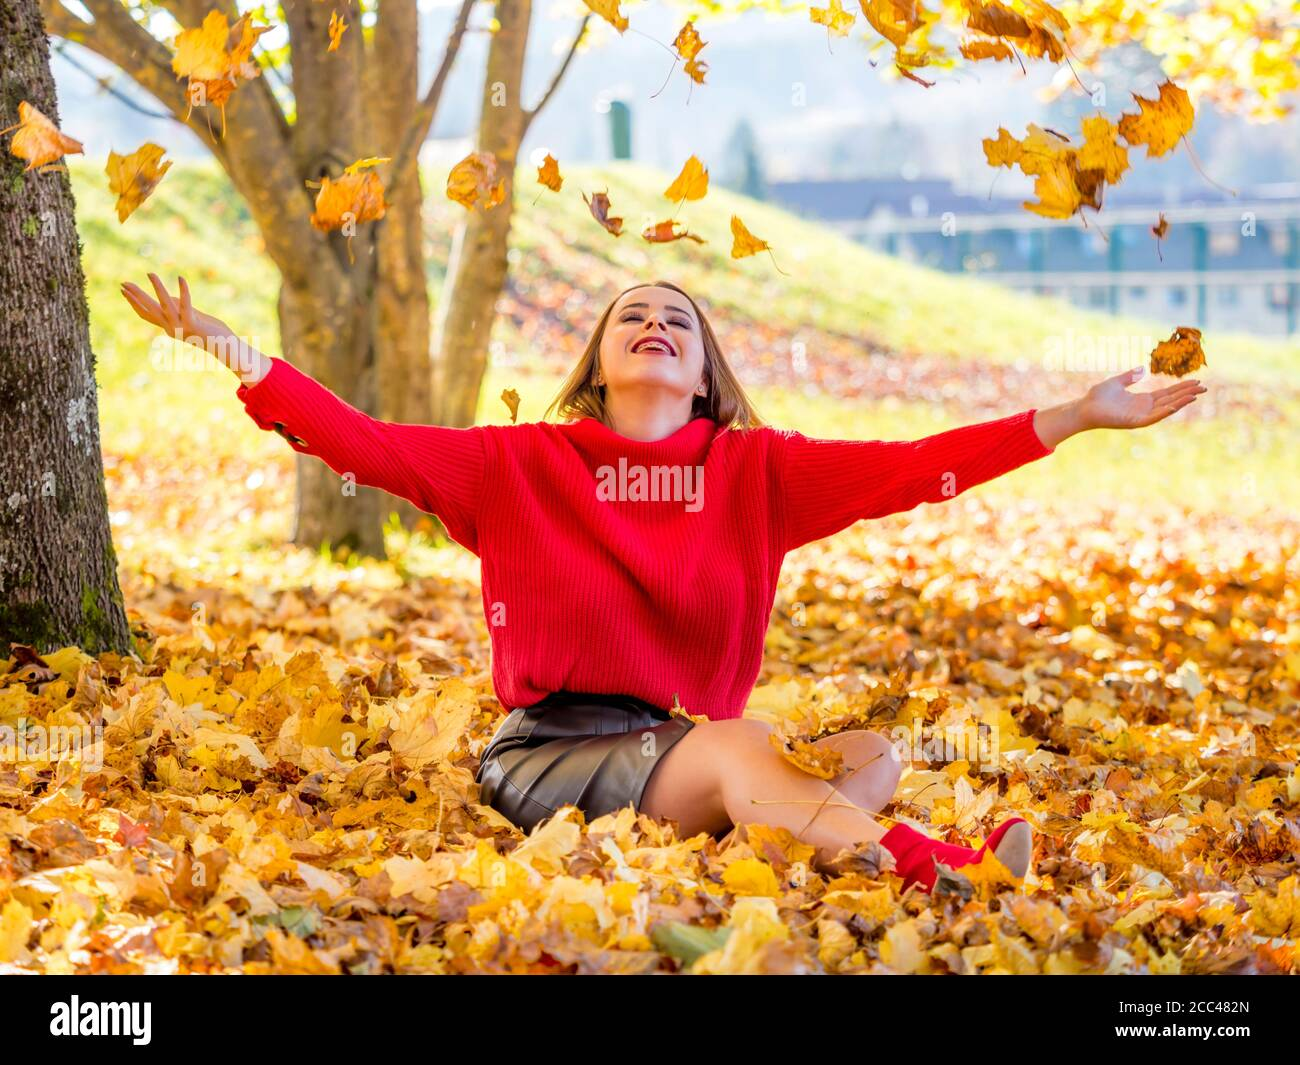 Teengirl in park nature Autumn Fall season seasonal conceptual concept throwing leaves above head up upwards away happy smiling spread arms hands Stock Photo